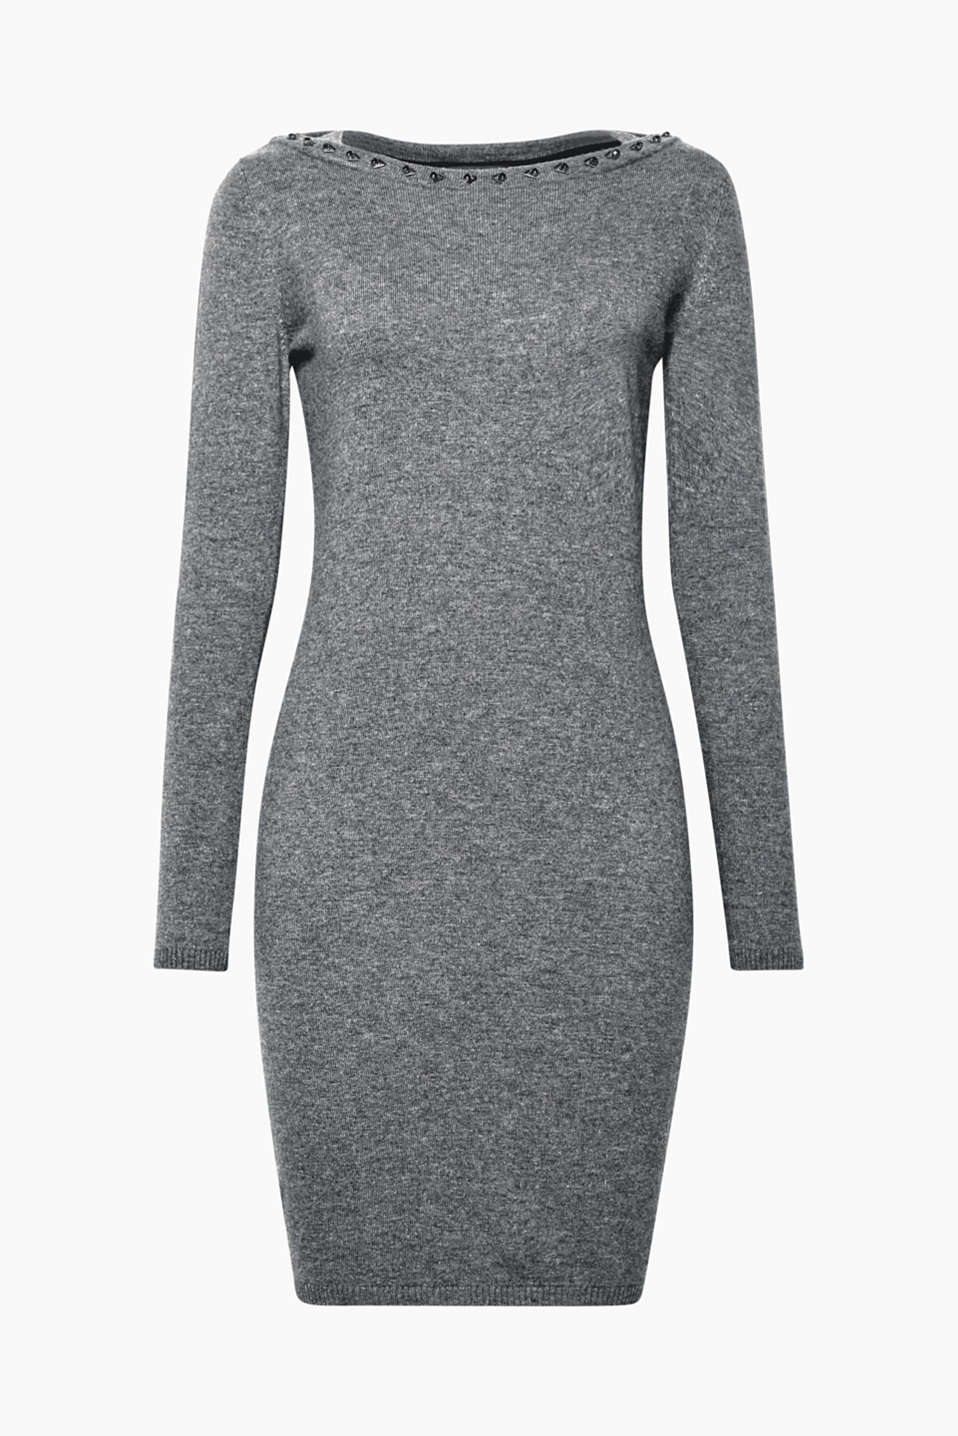 This figure-enhancing knitted dress with soft cashmere and sparkling gemstones on the neckline is soft and elegant!